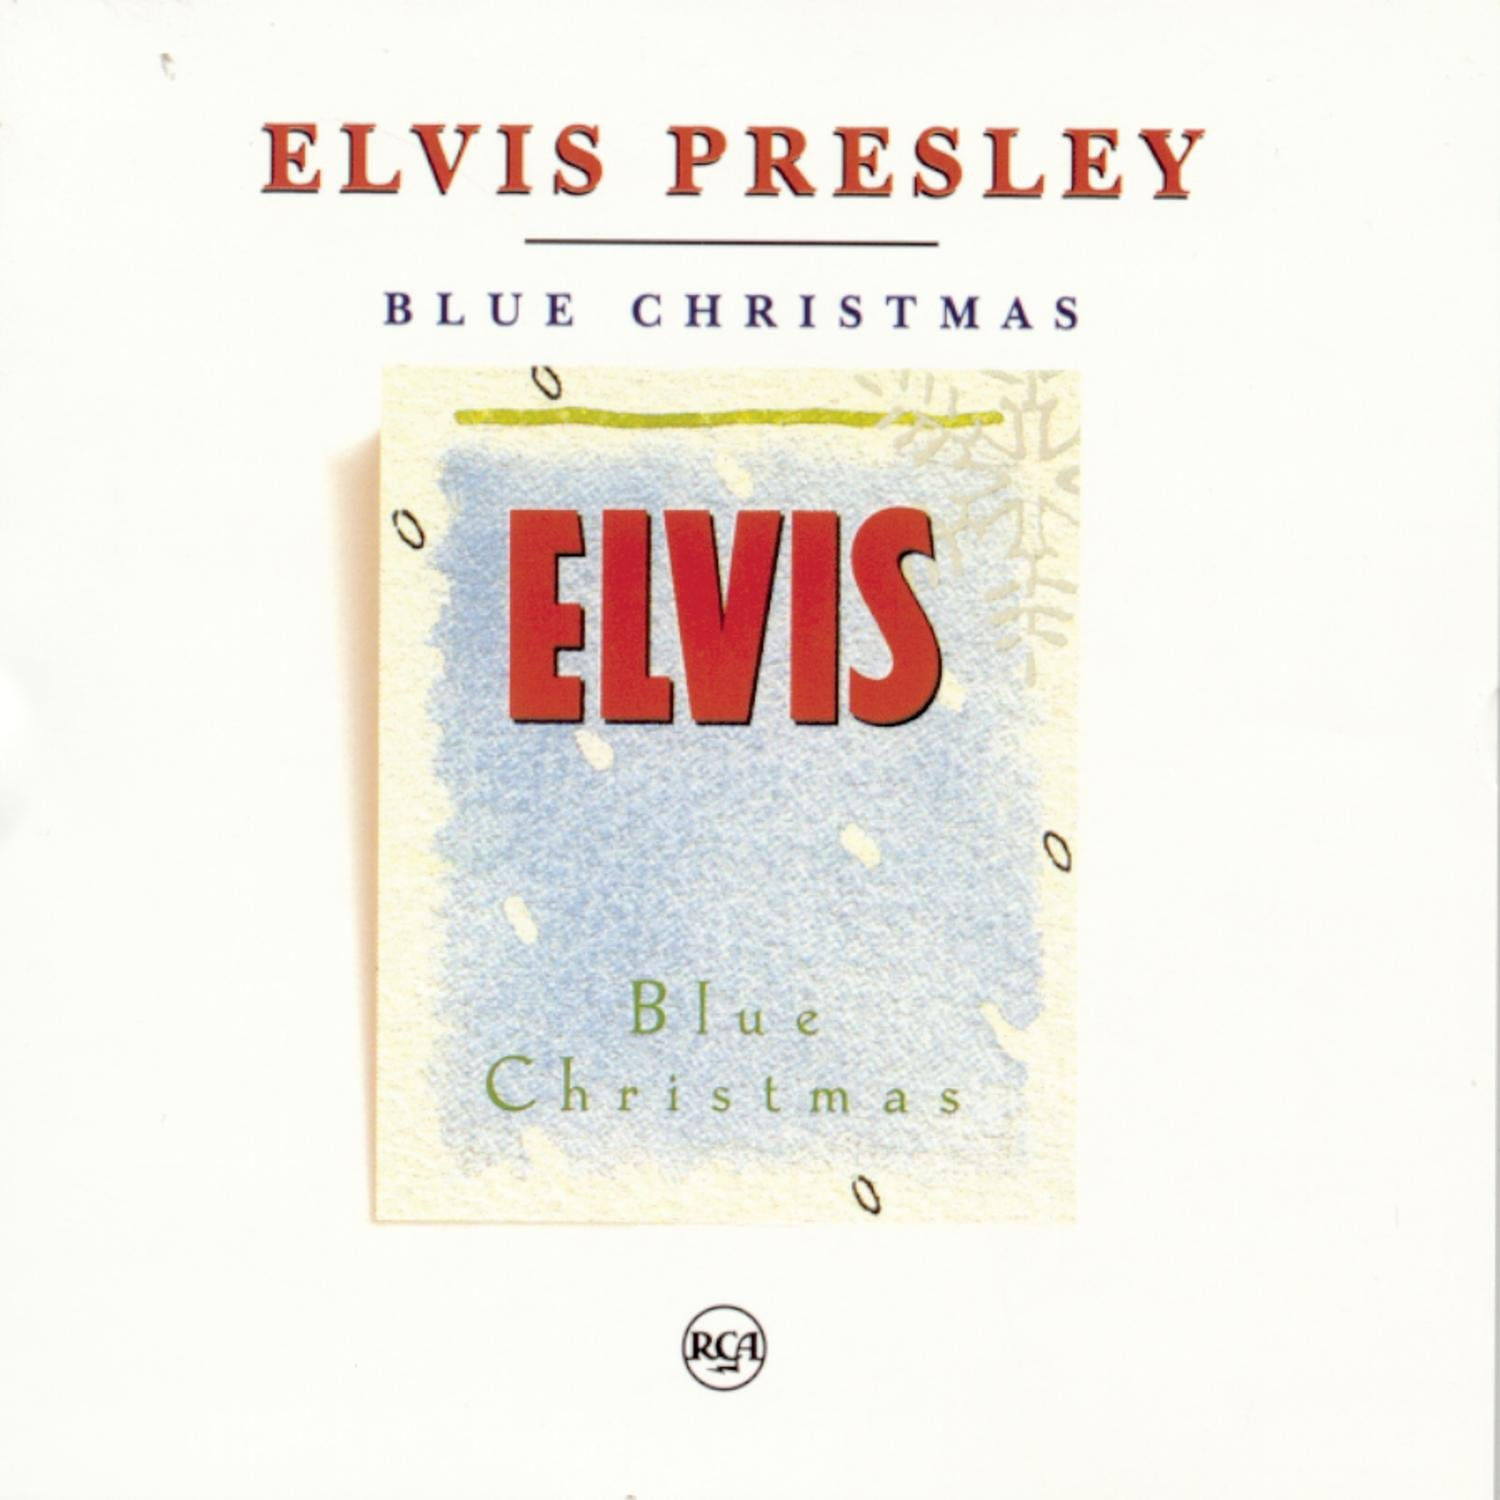 Elvis Presley - Blue Christmas - Amazon.com Music